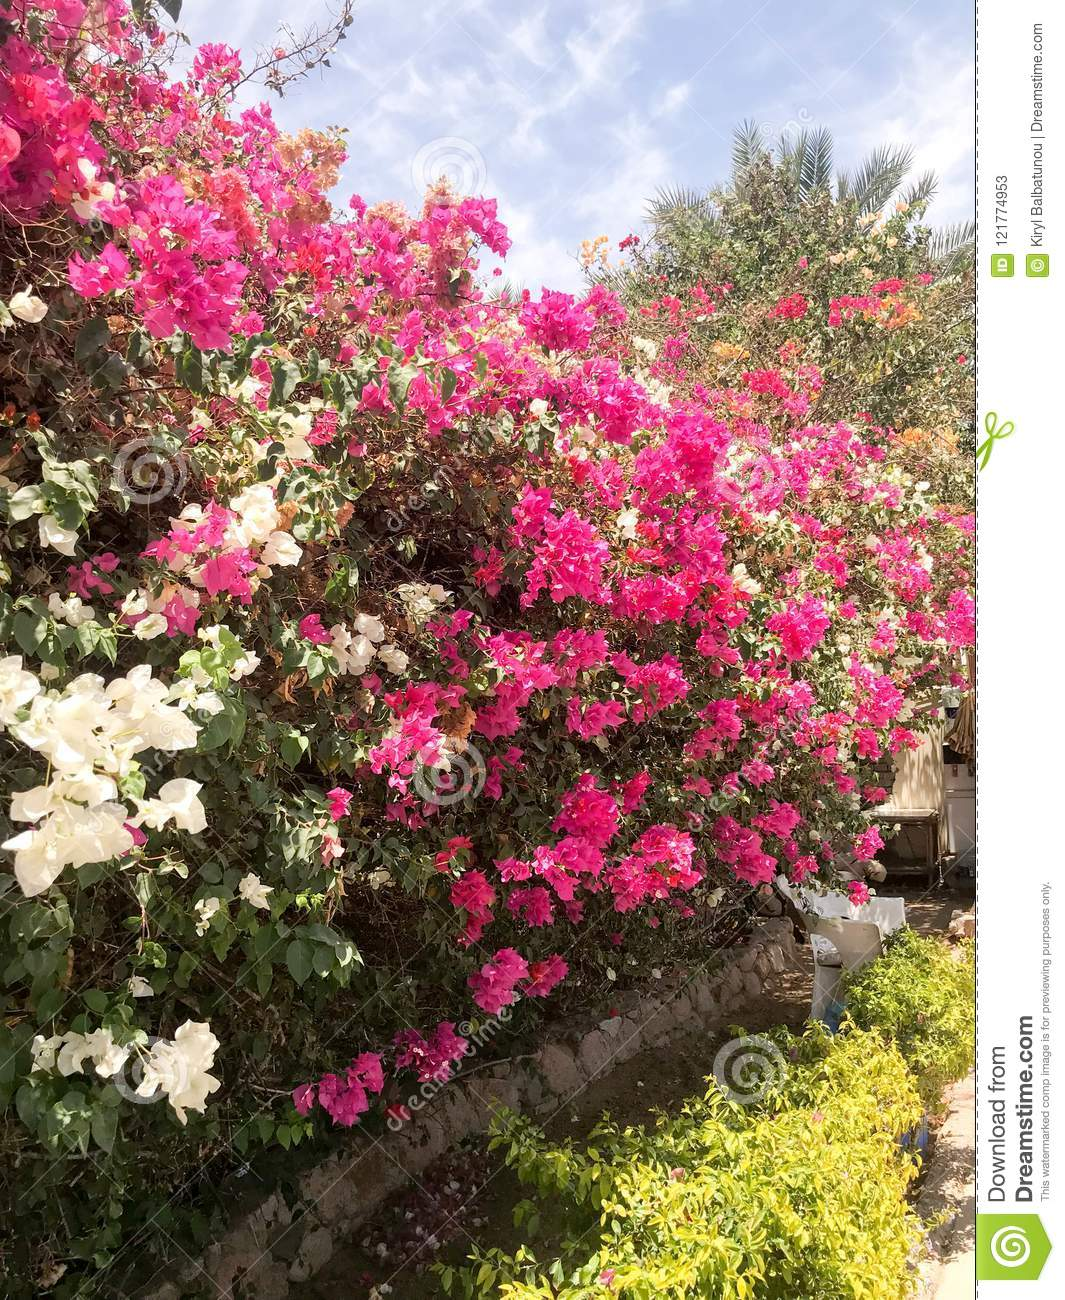 A Large Beautiful Lush Shrub An Exotic Tropical Plant With White